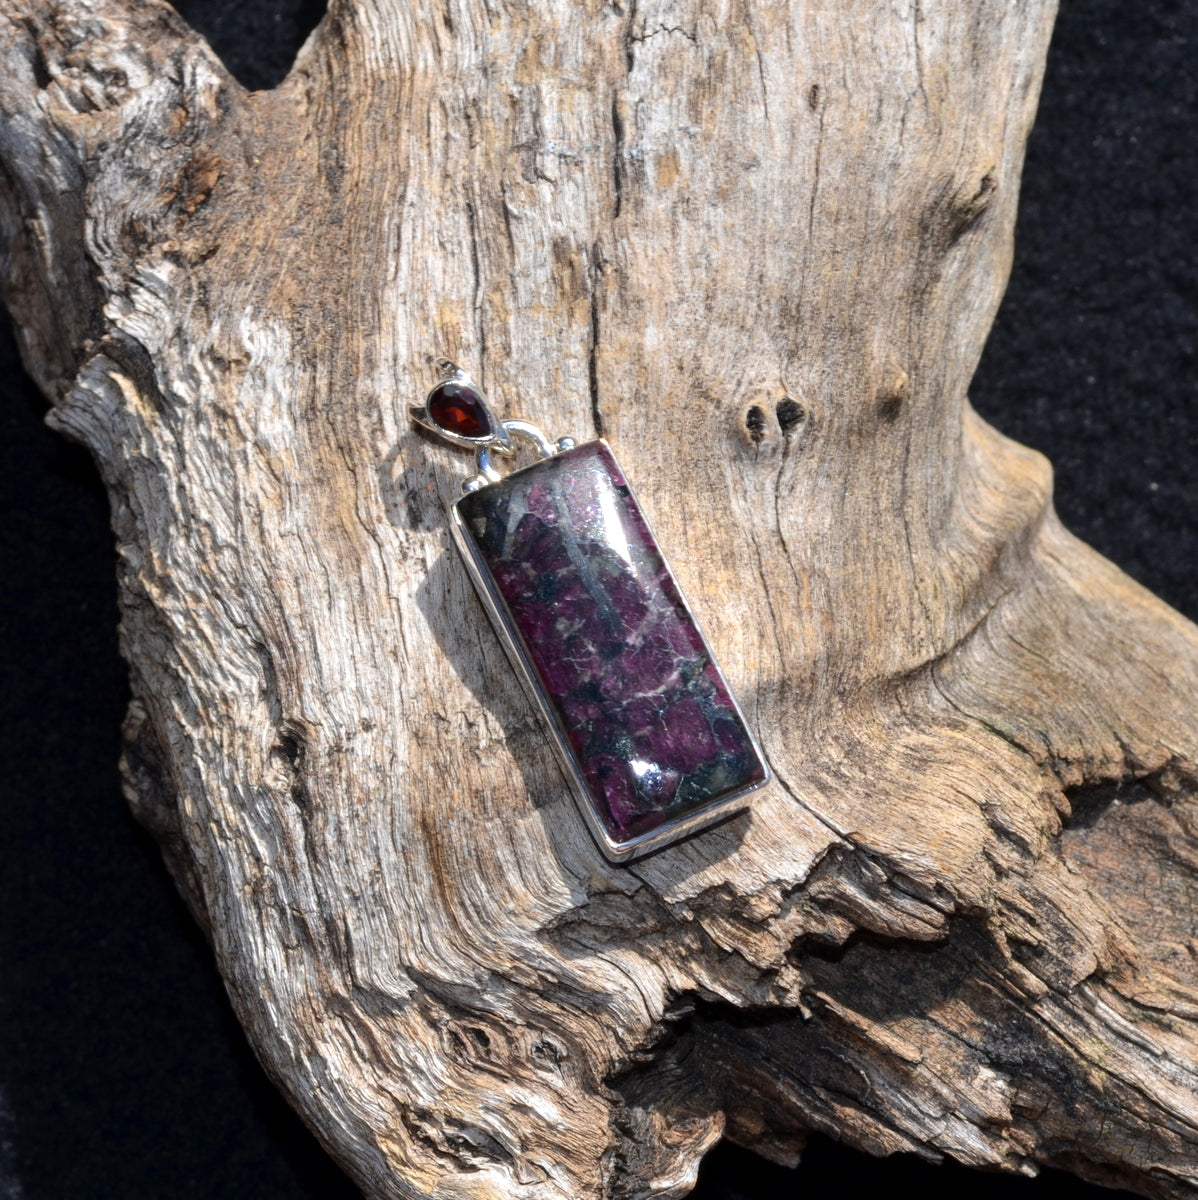 Eudialyte & Garnet 925 Silver Pendant - Decision Making Reconnection Self Love - Buy now at Illiom Crystals - Afterpay Available